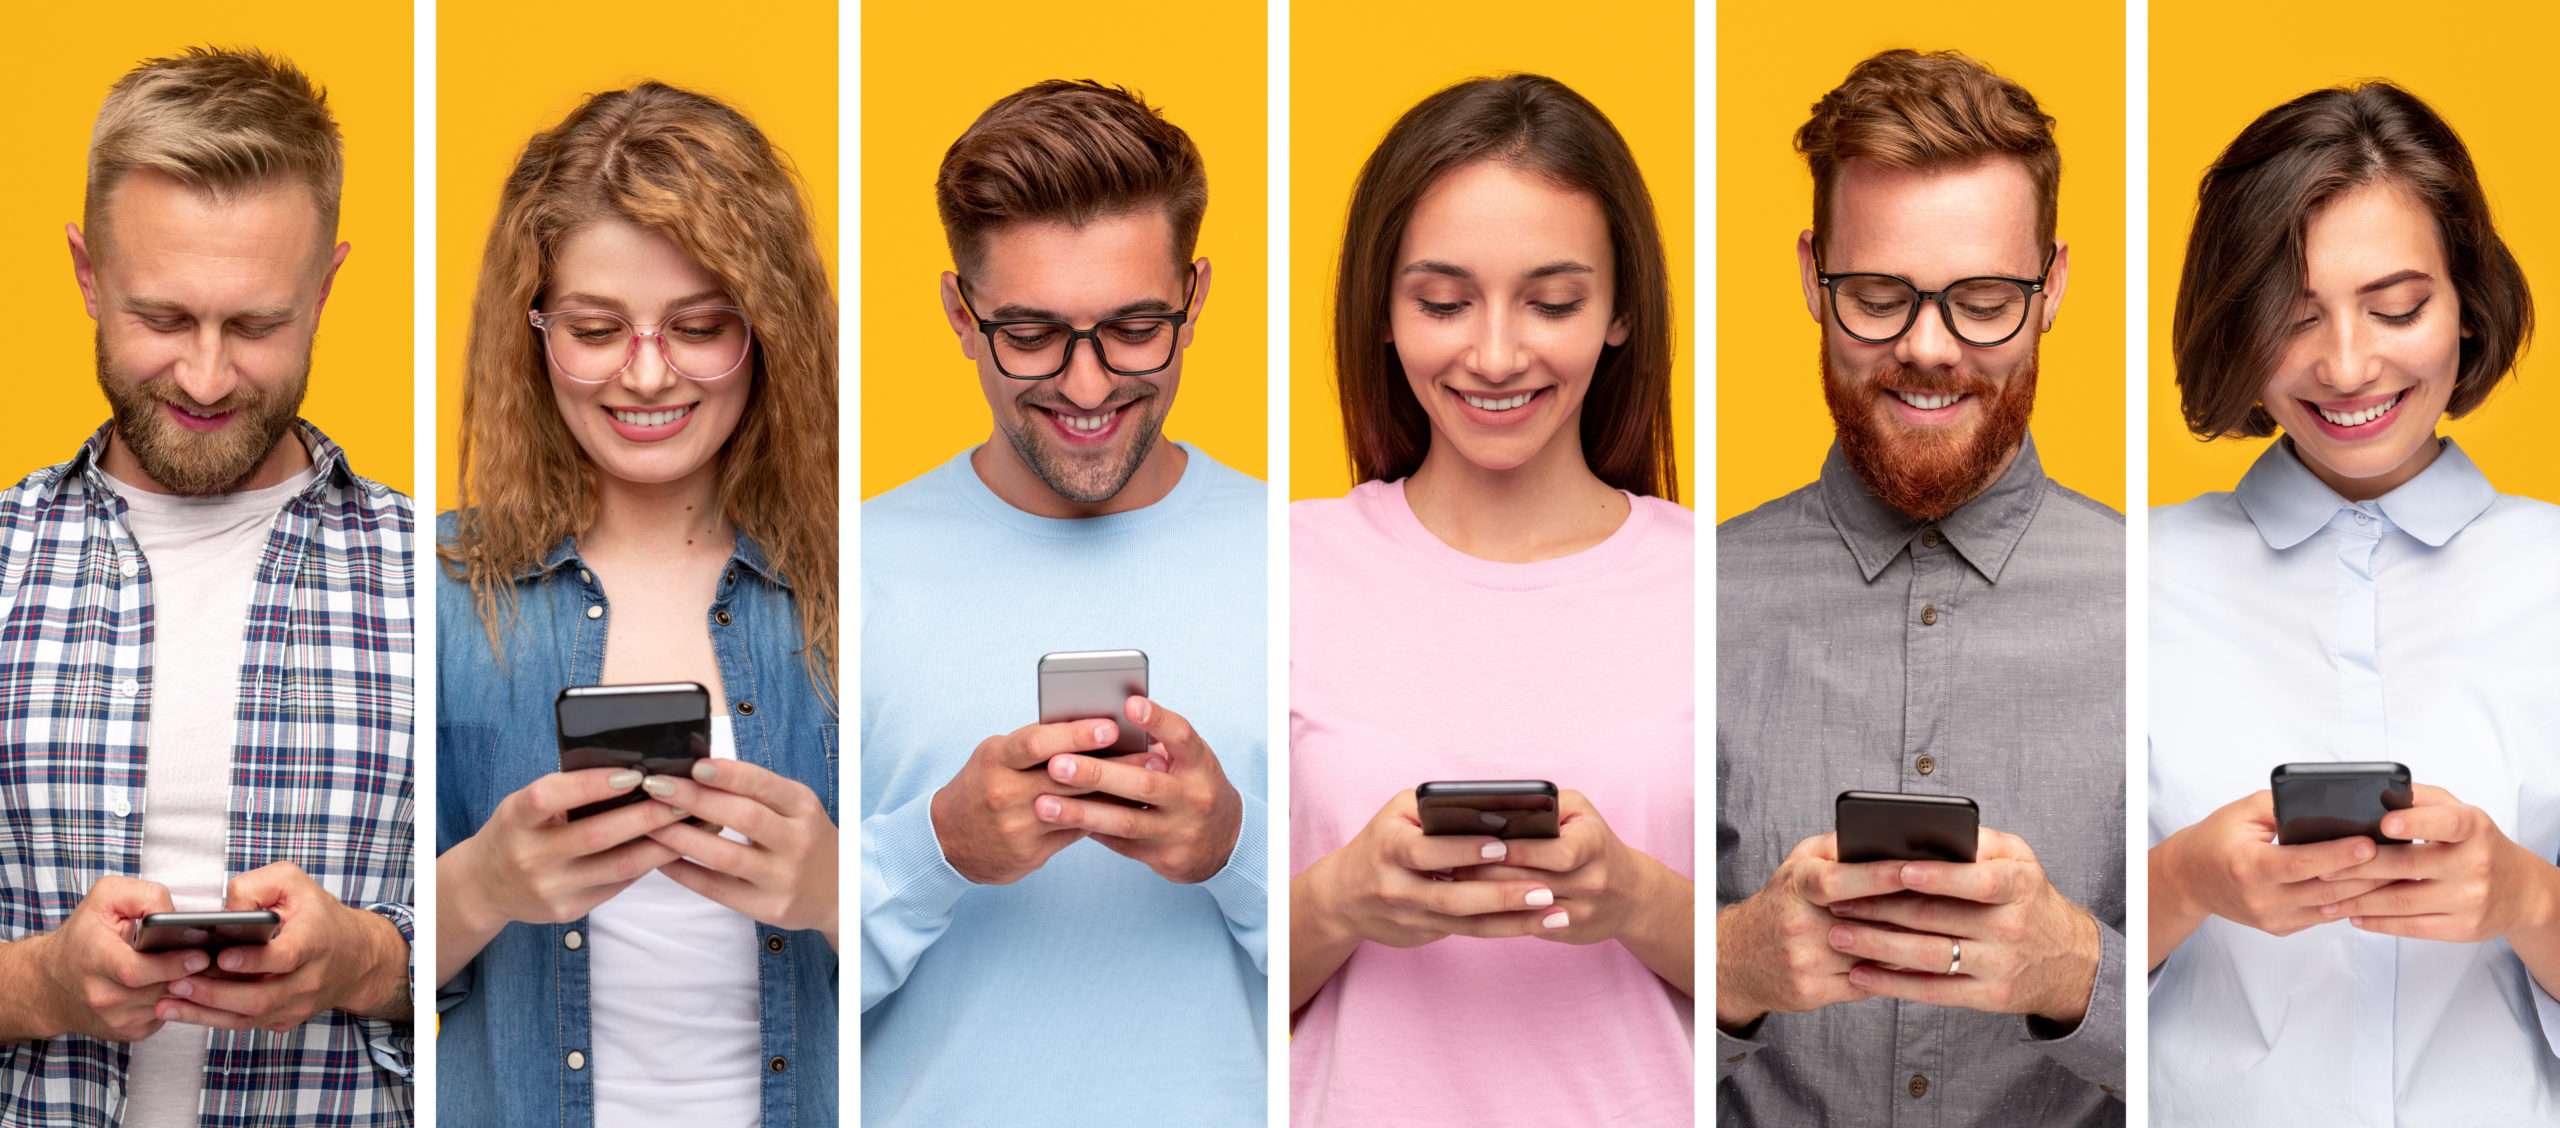 Collage of modern diverse men and women texting messages on smartphones and cheerfully smiling against yellow background